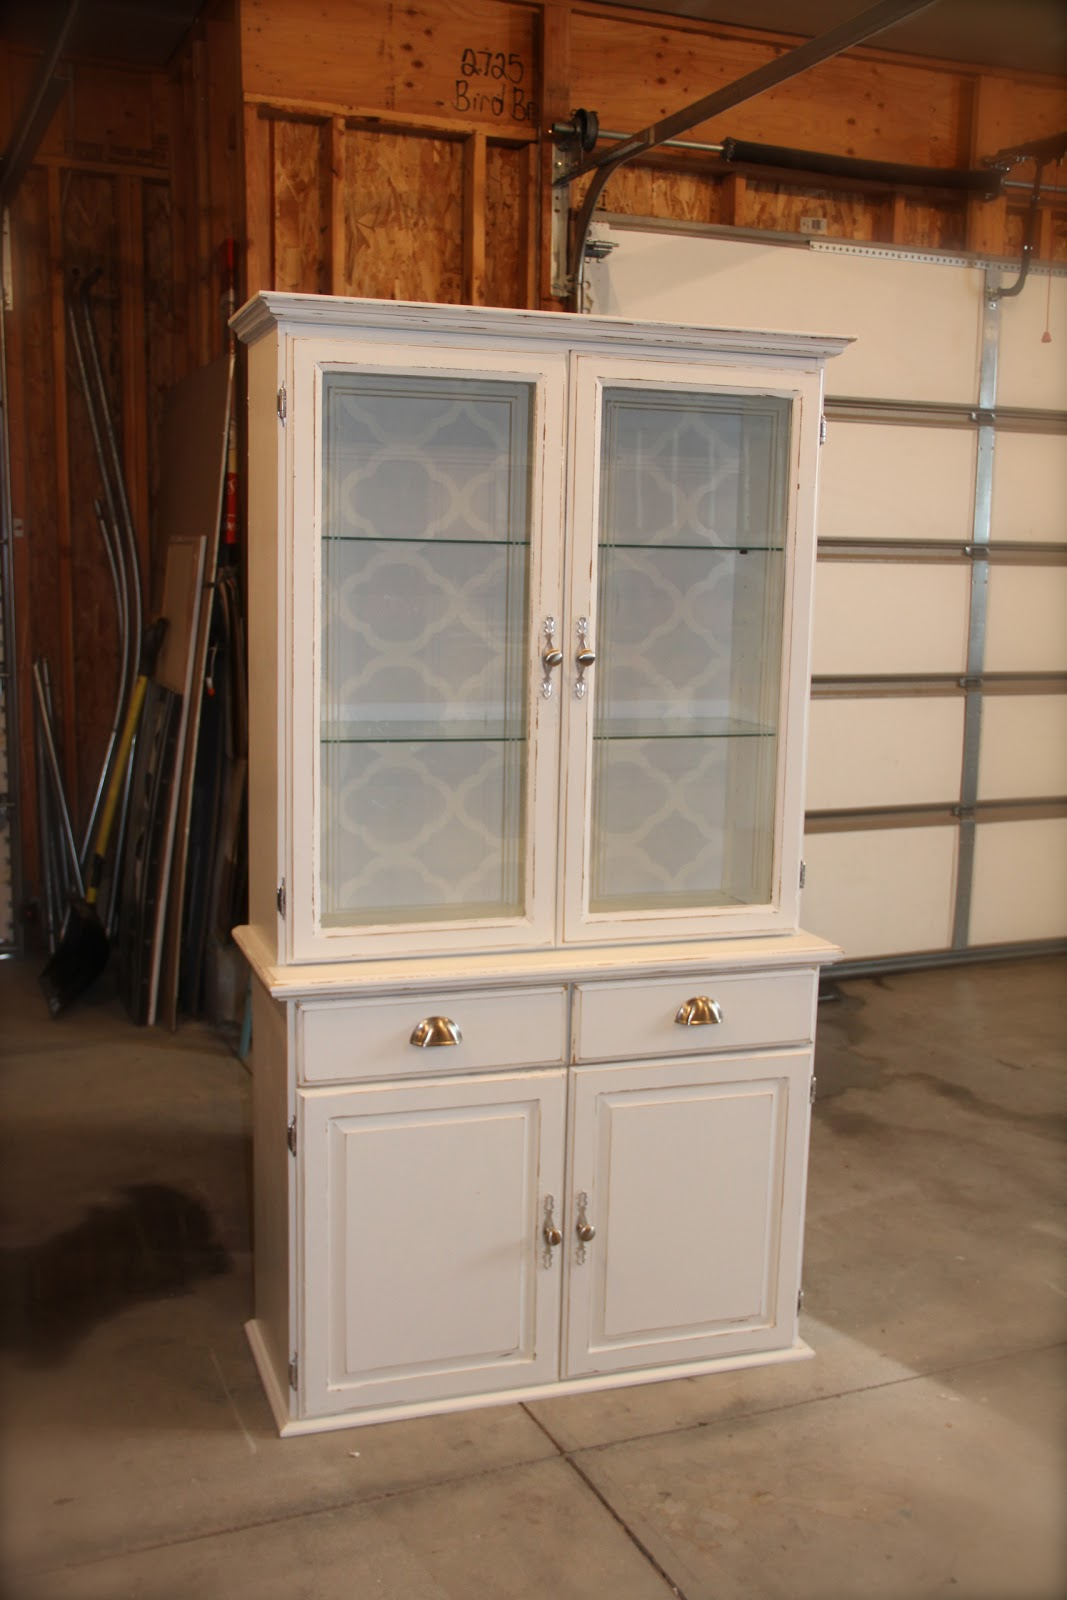 Dining Room Hutches Small Hutch Furniture Room Furniture: White Place Furniture : {Small Hutch}